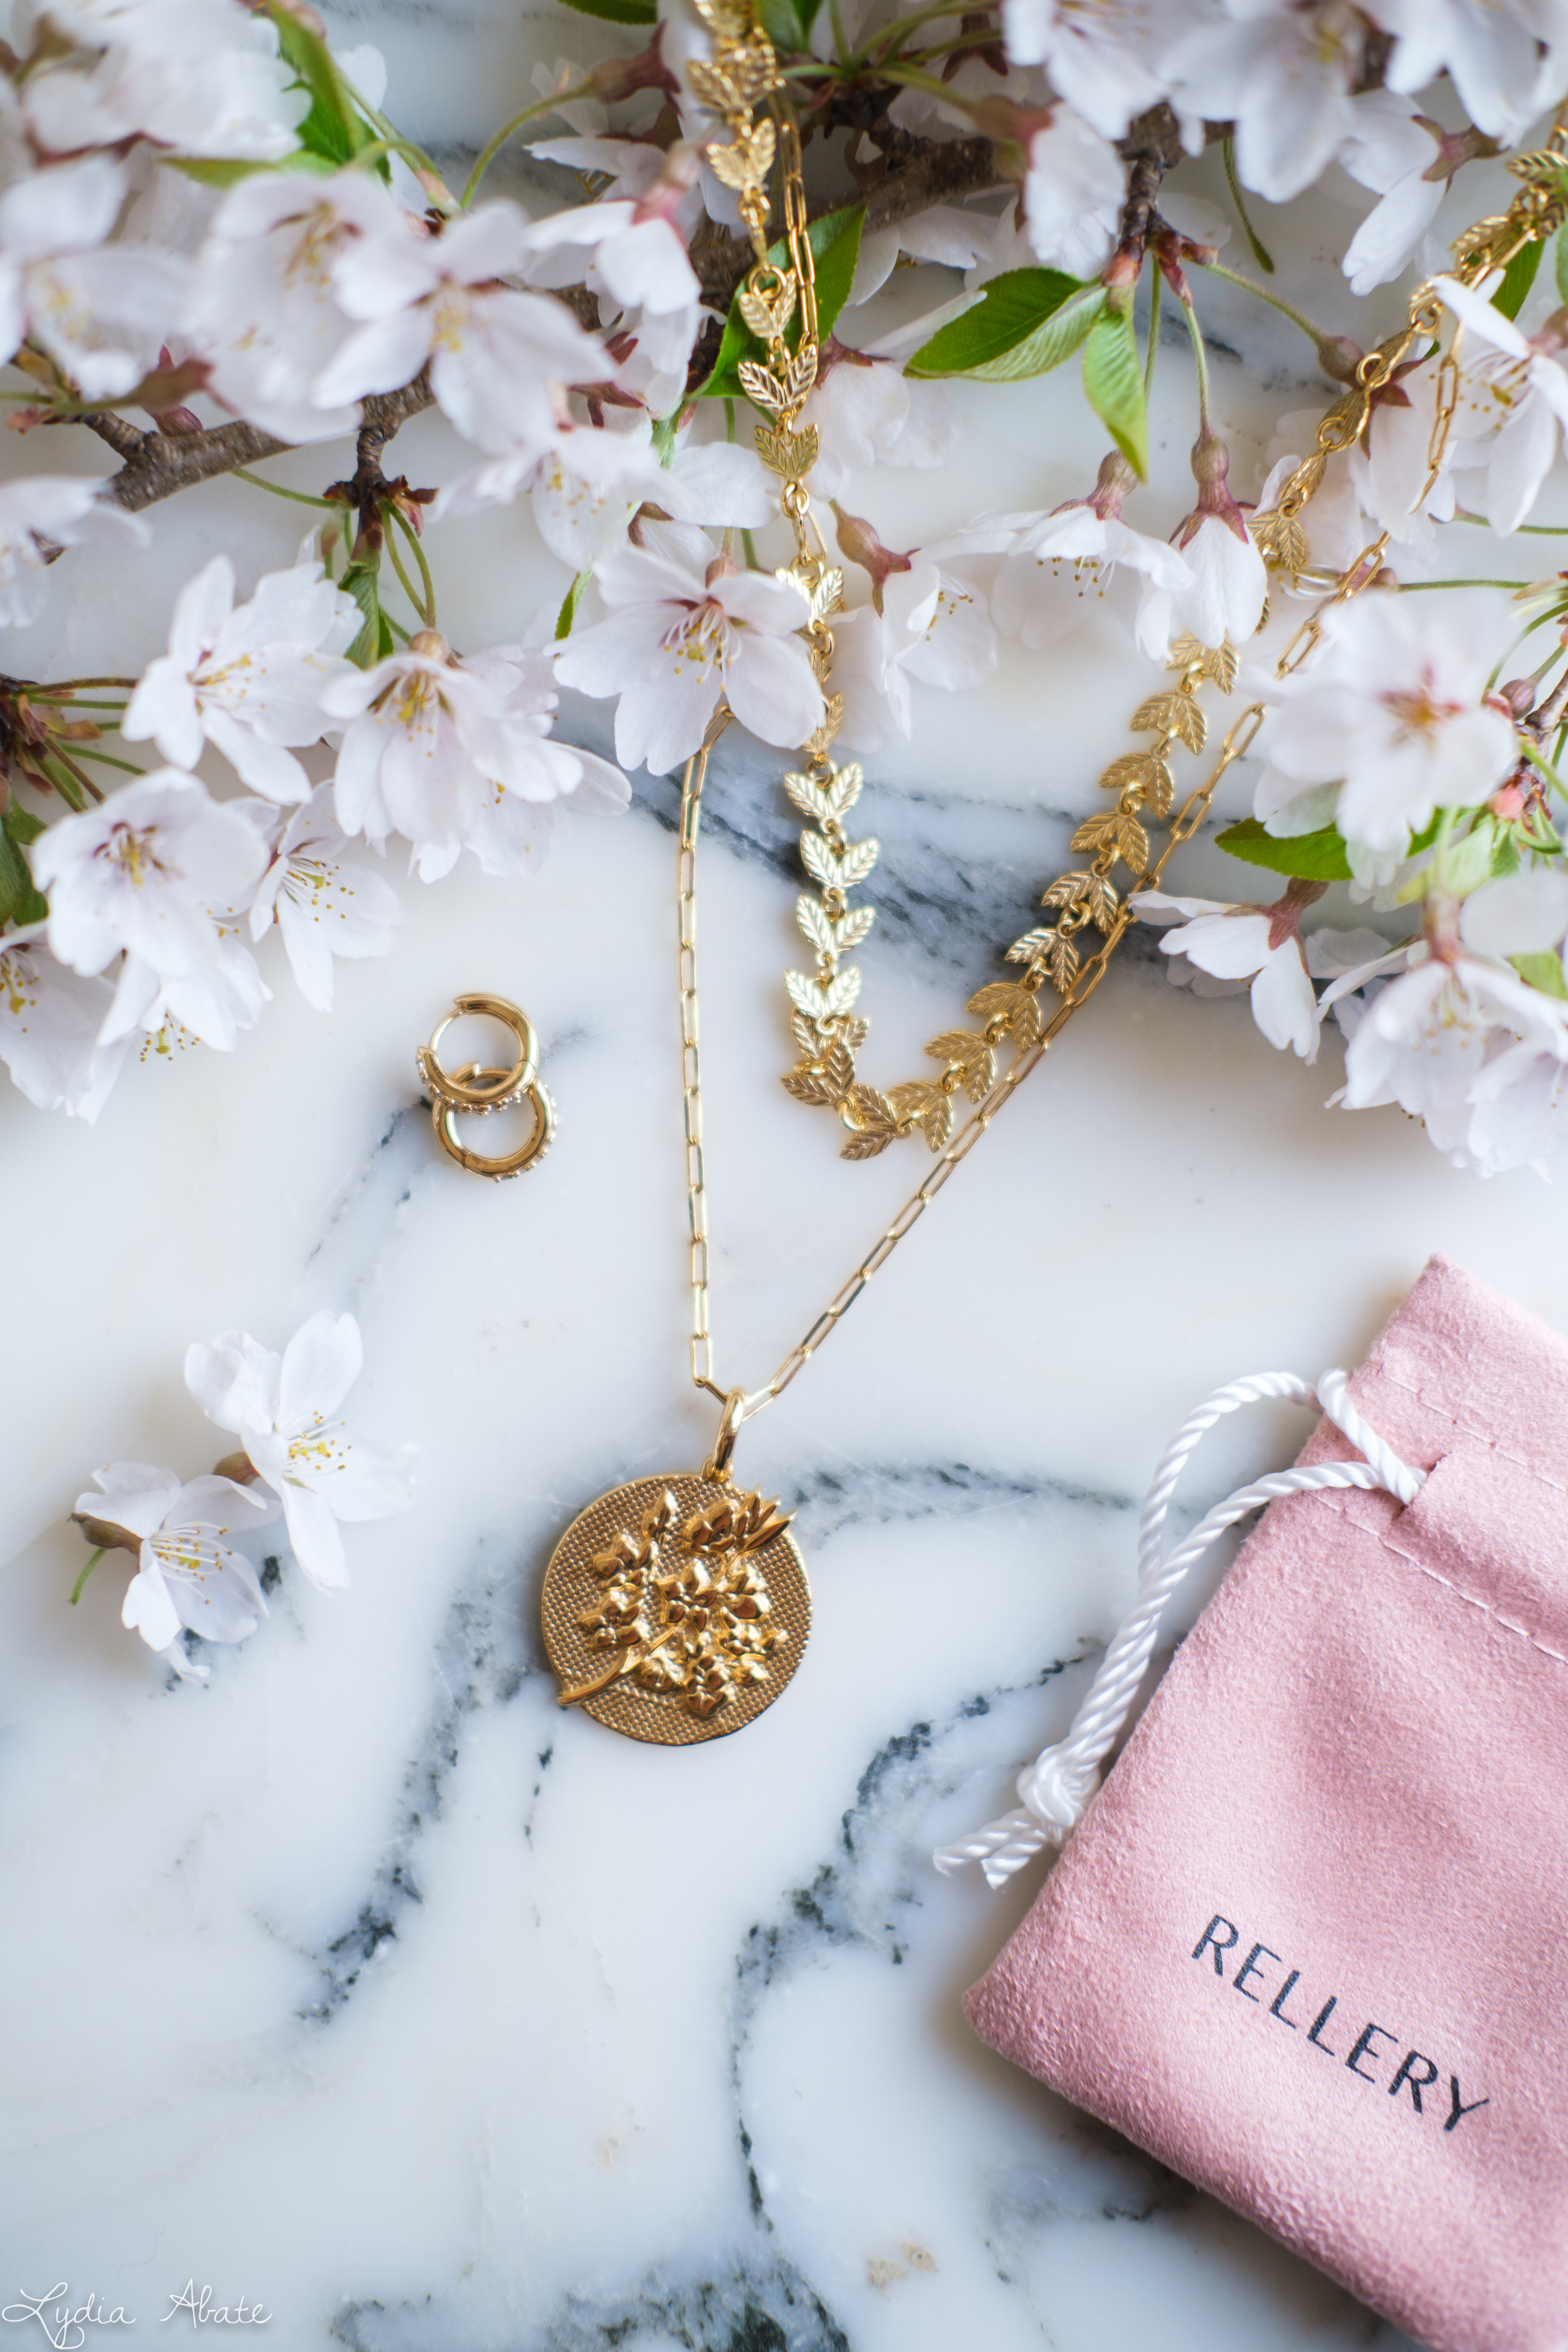 rellery cherry blossom pendant, laurel necklace, huggies-1.jpg